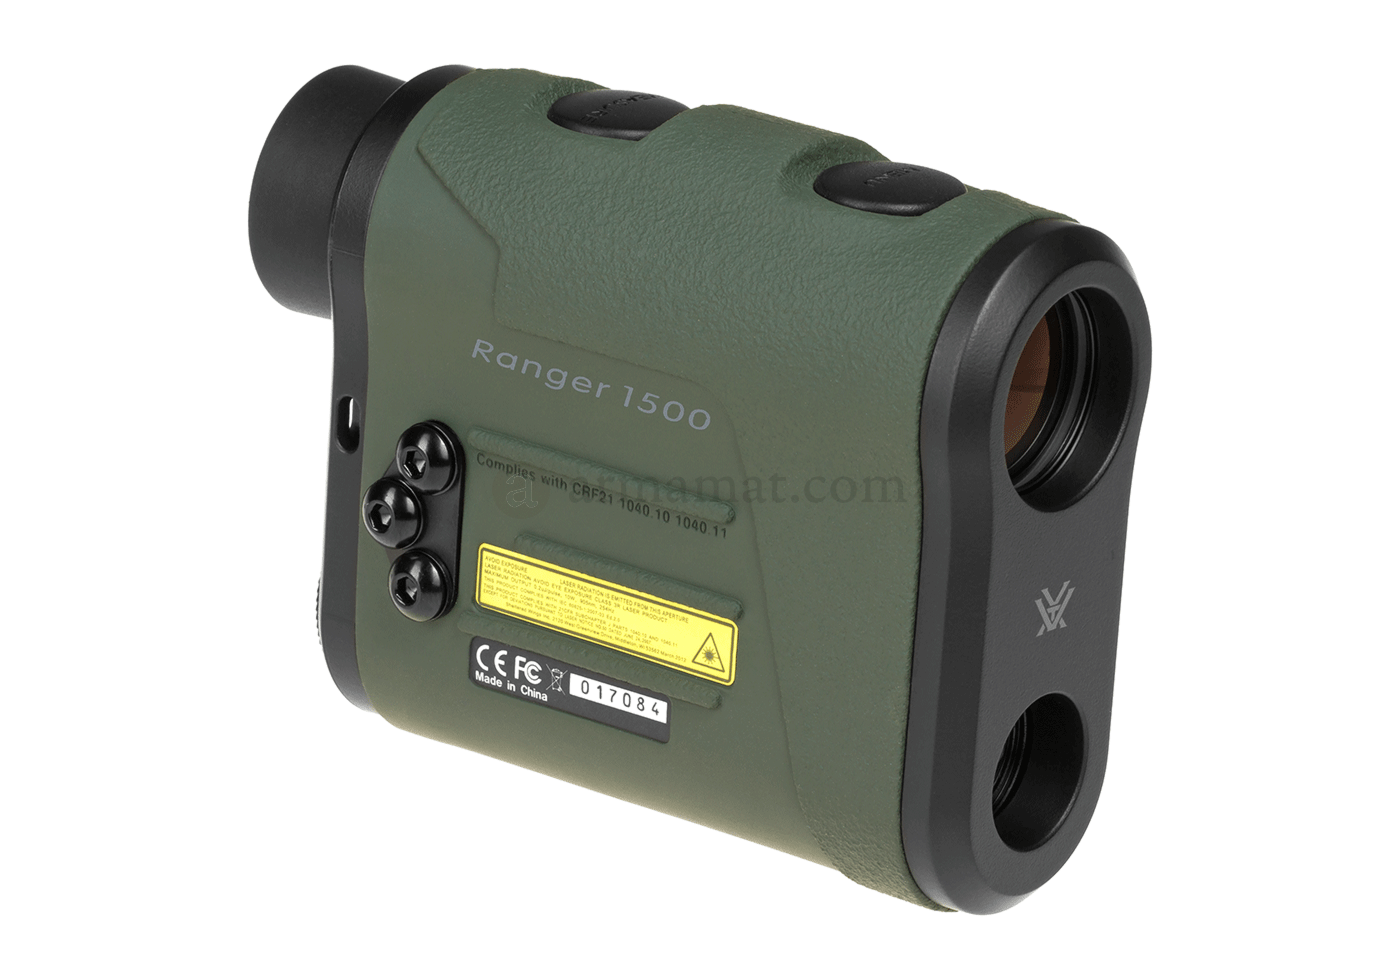 Ranger 1500 rangefinder vortex optics entfernungsmesser optik